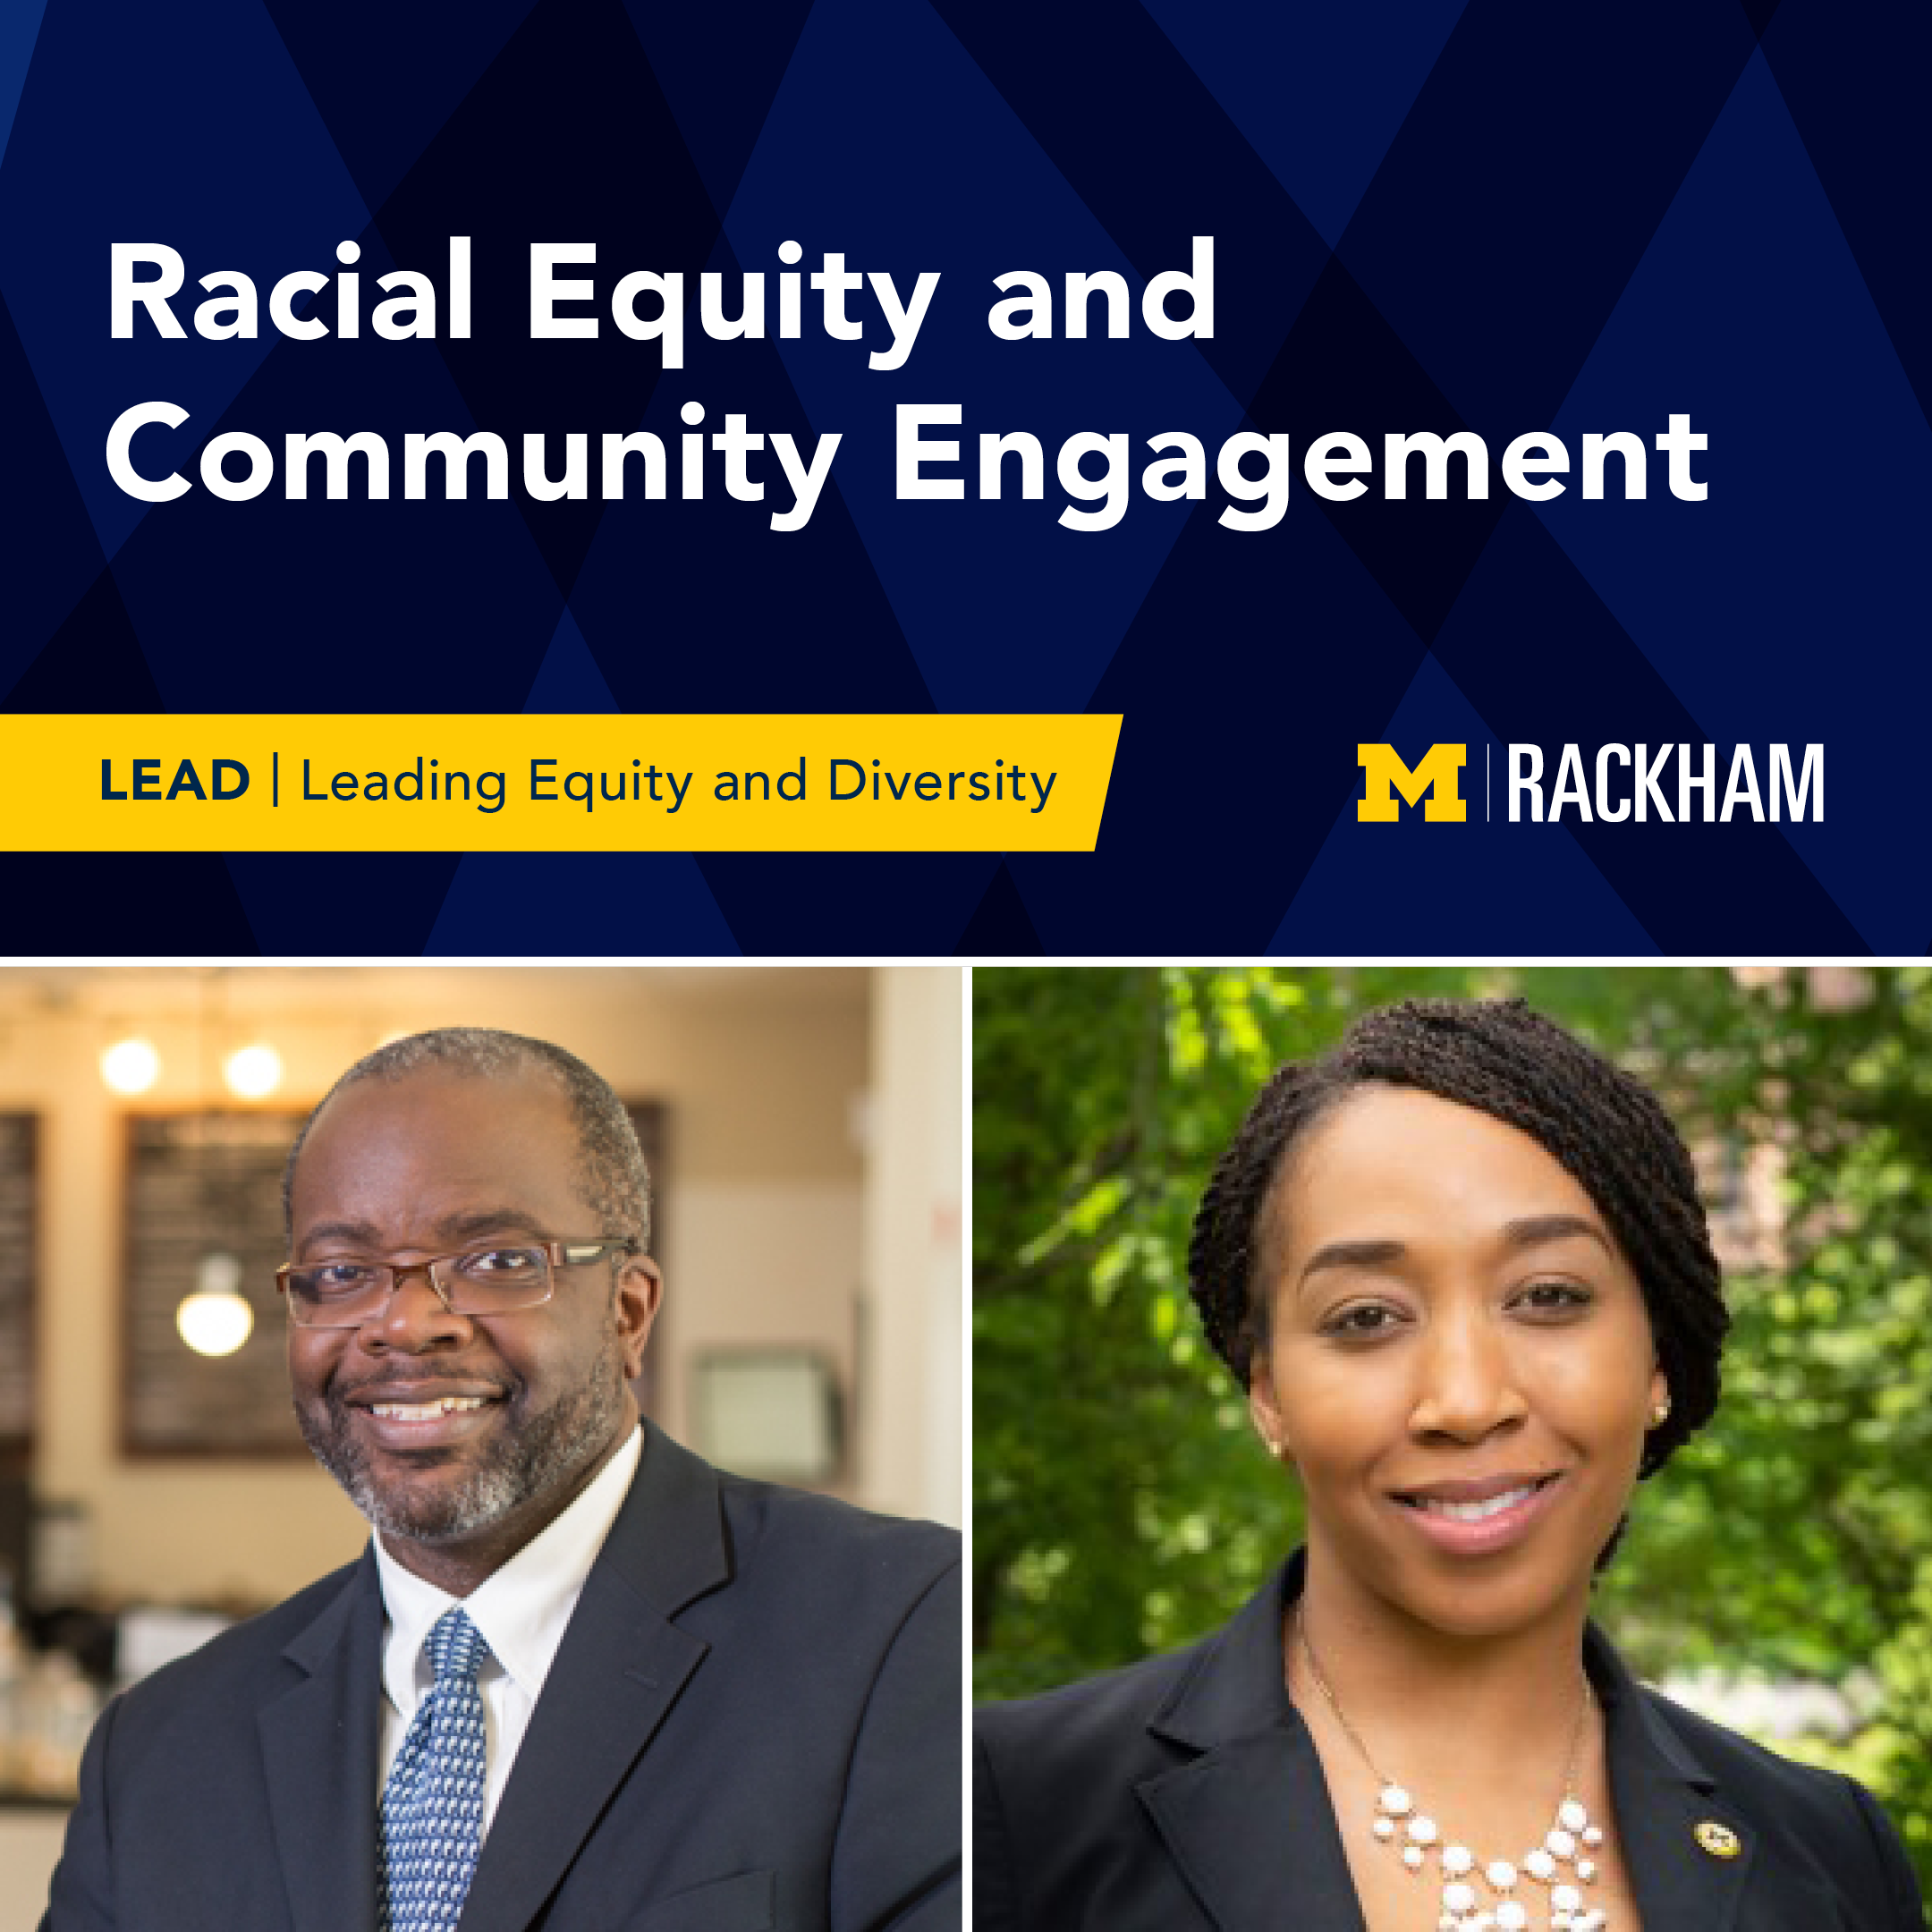 Racial Equity and Community Engagement as part of the LEAD series.